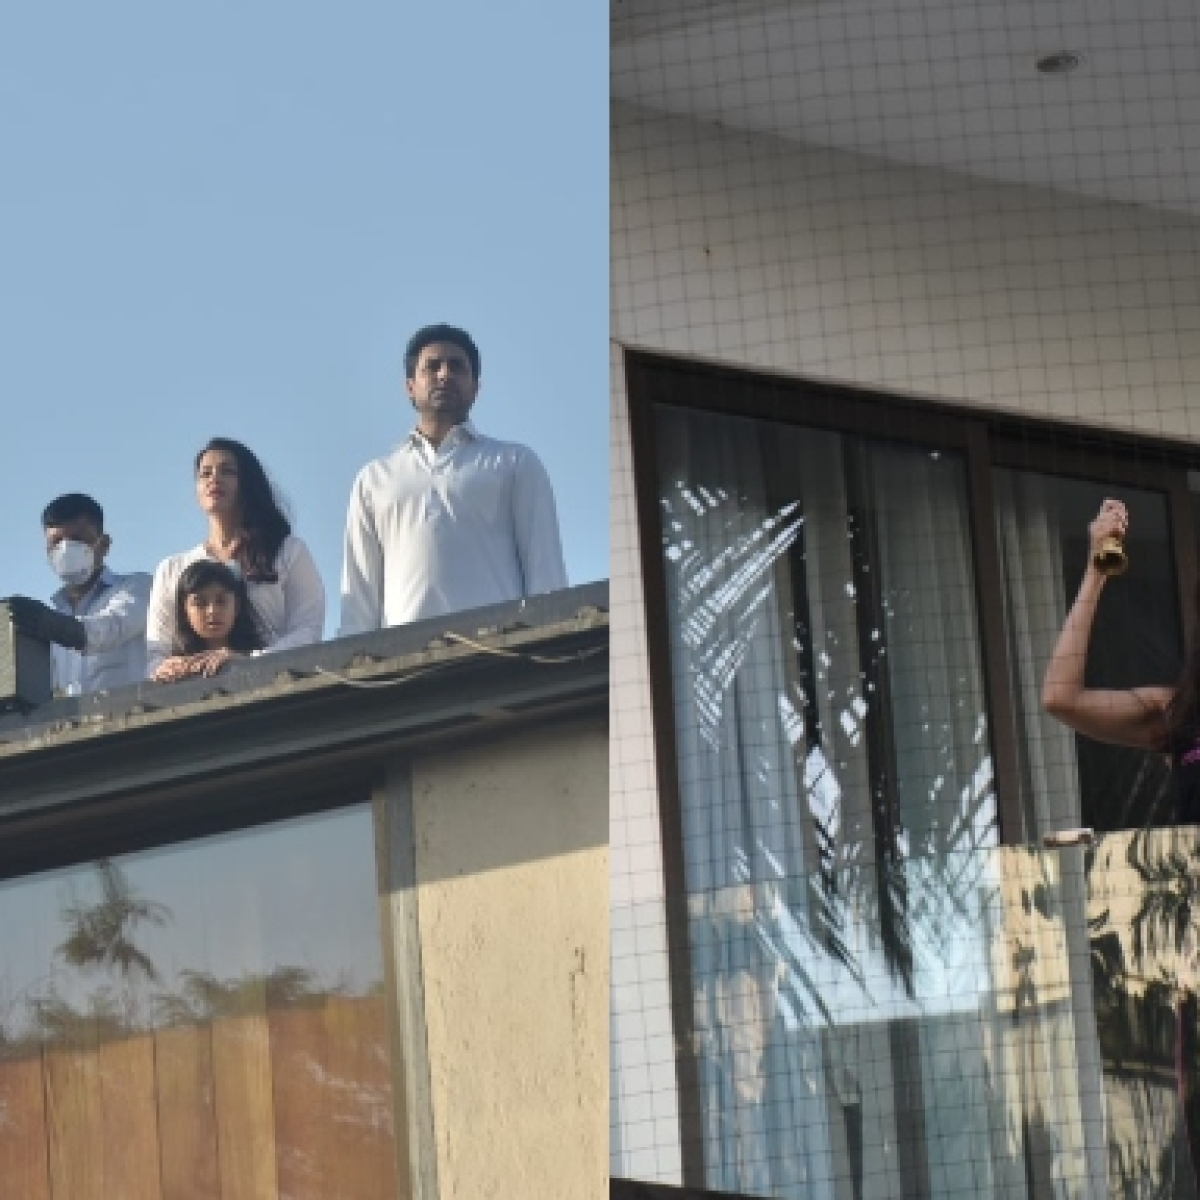 In Pics: Amitabh Bachchan, Kareena Kapoor, and other B-town celebrities show up at their balconies to clap after PM Modi's appeal